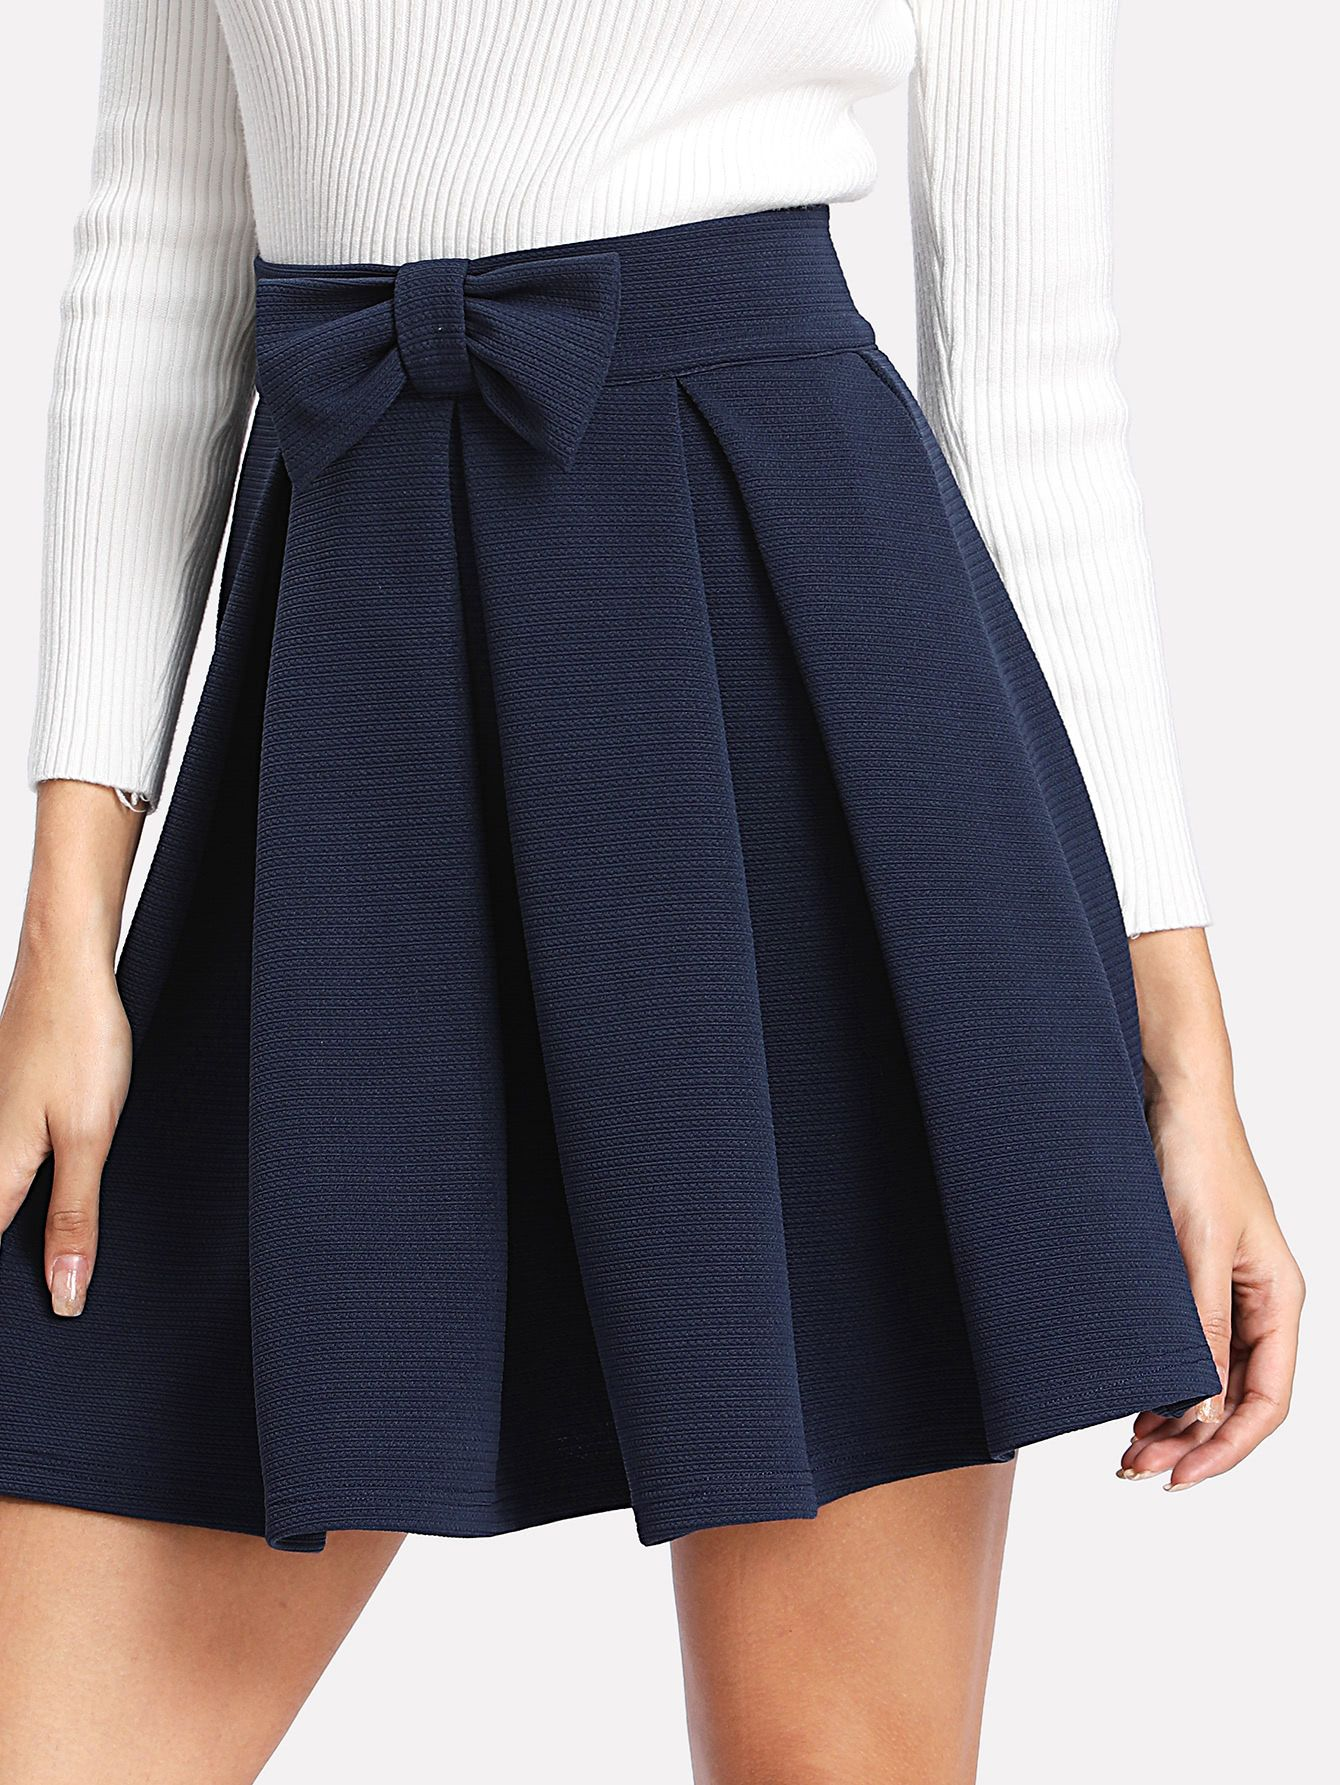 Shop Bow Front Box Pleated Textured Skirt Online Shein Offers Bow Front Box Pleated Textured Skirt Mor Blue Skirt Outfits Textured Skirt Pleated Skirt Short